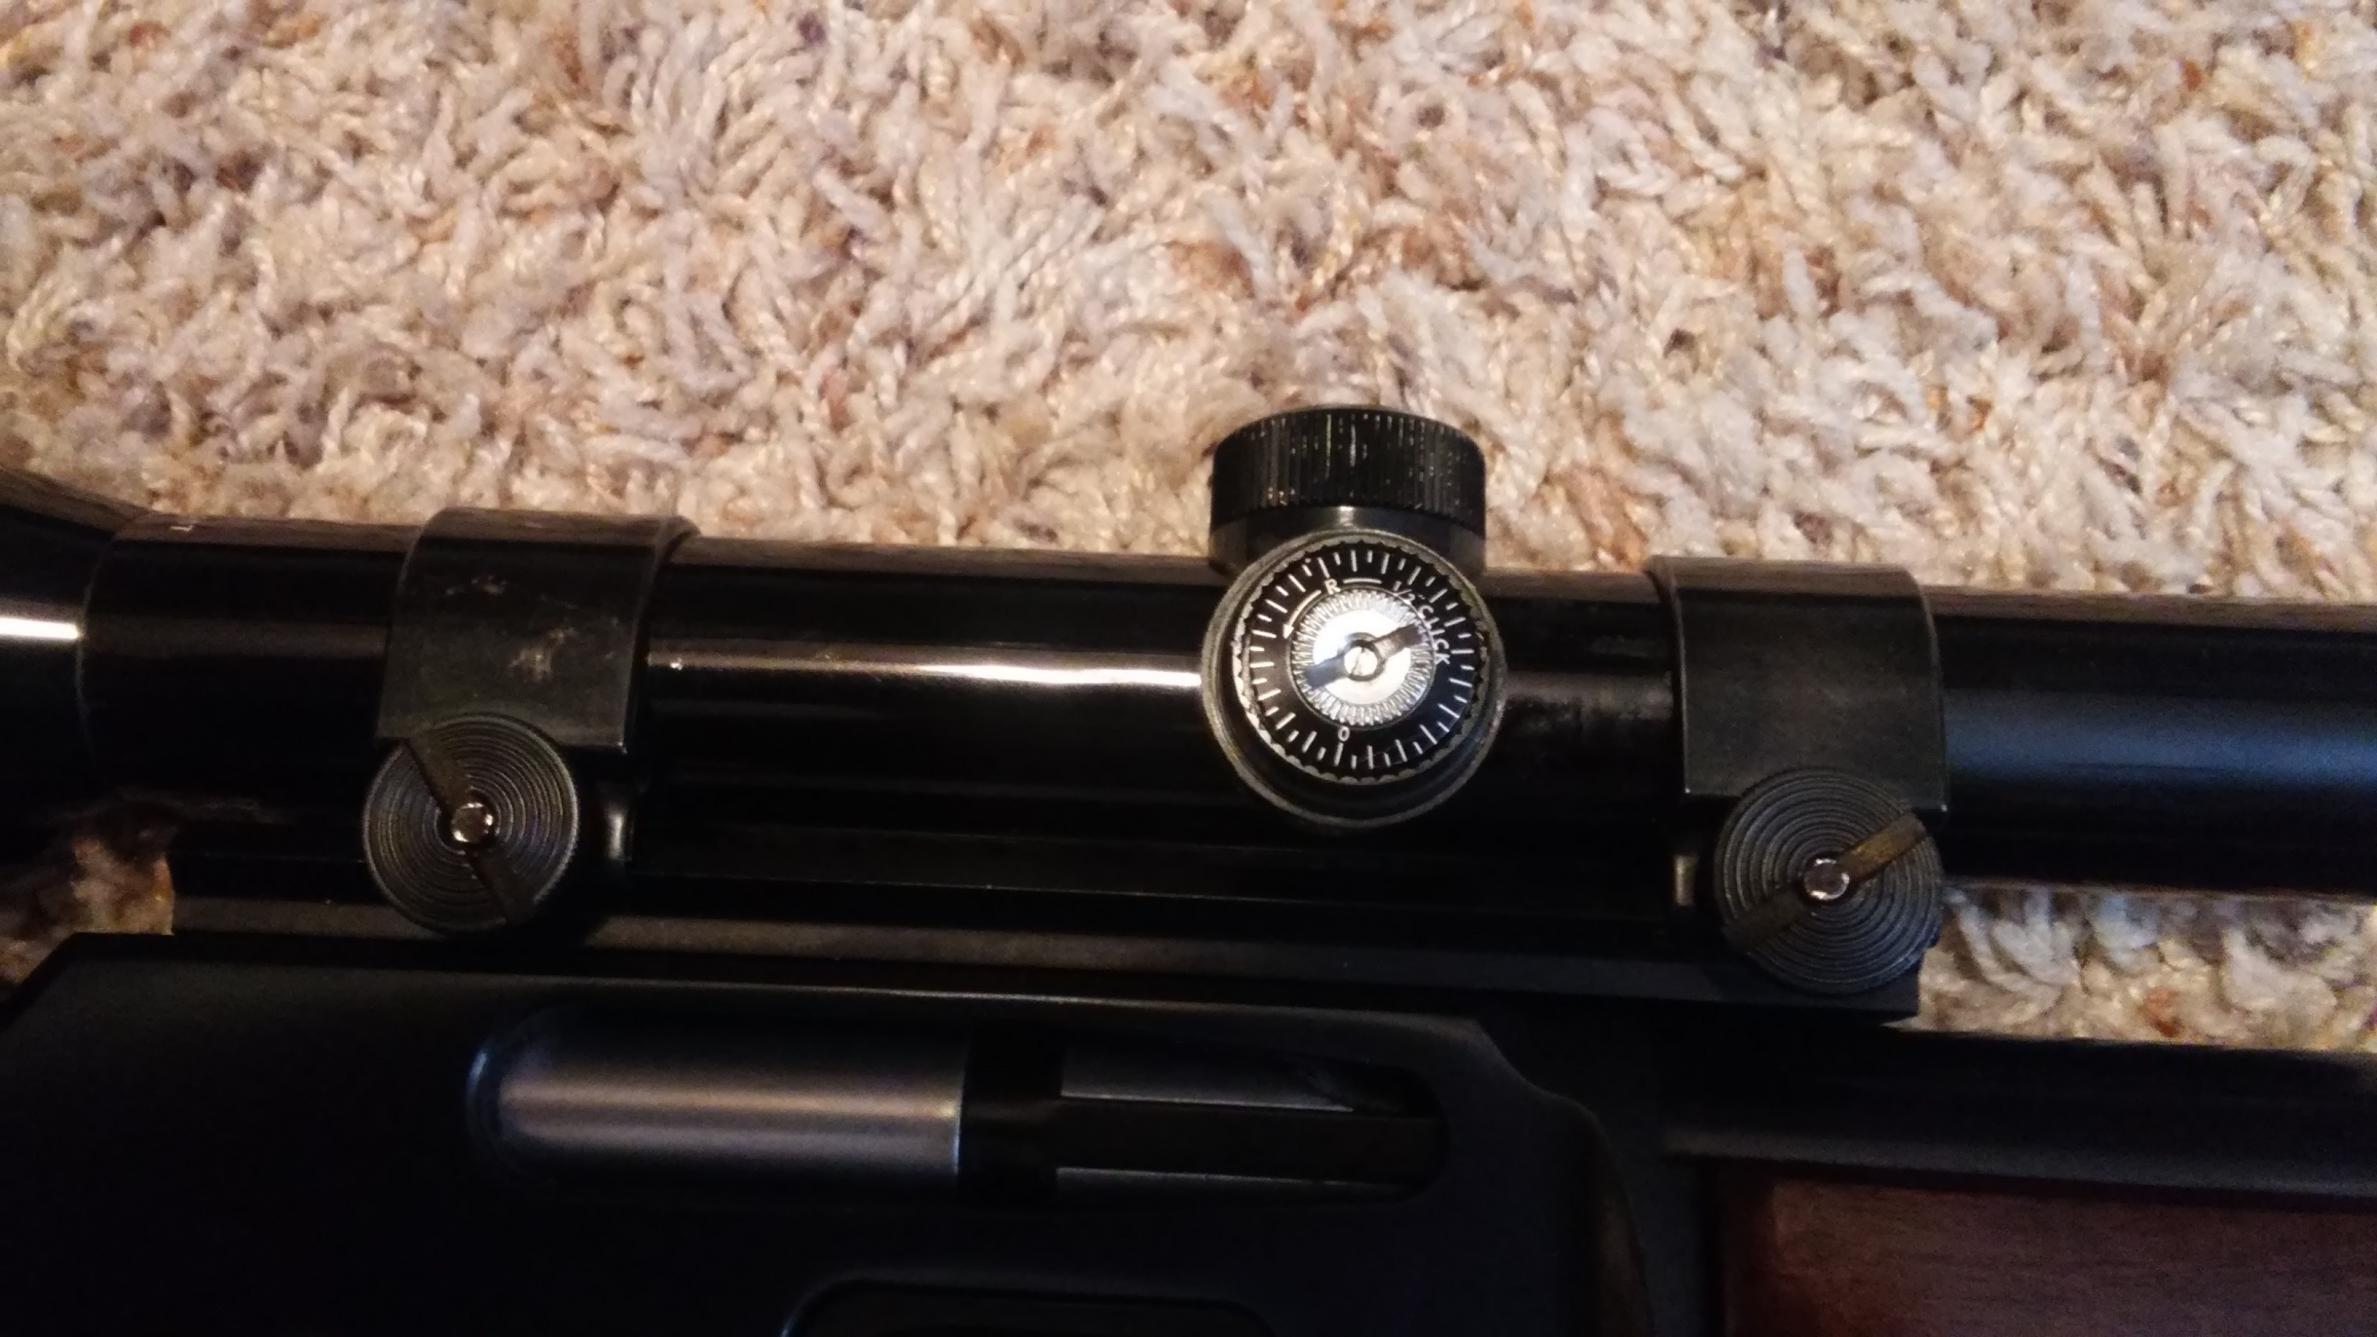 Bushnell Scopechief 4x-1230161427.jpg